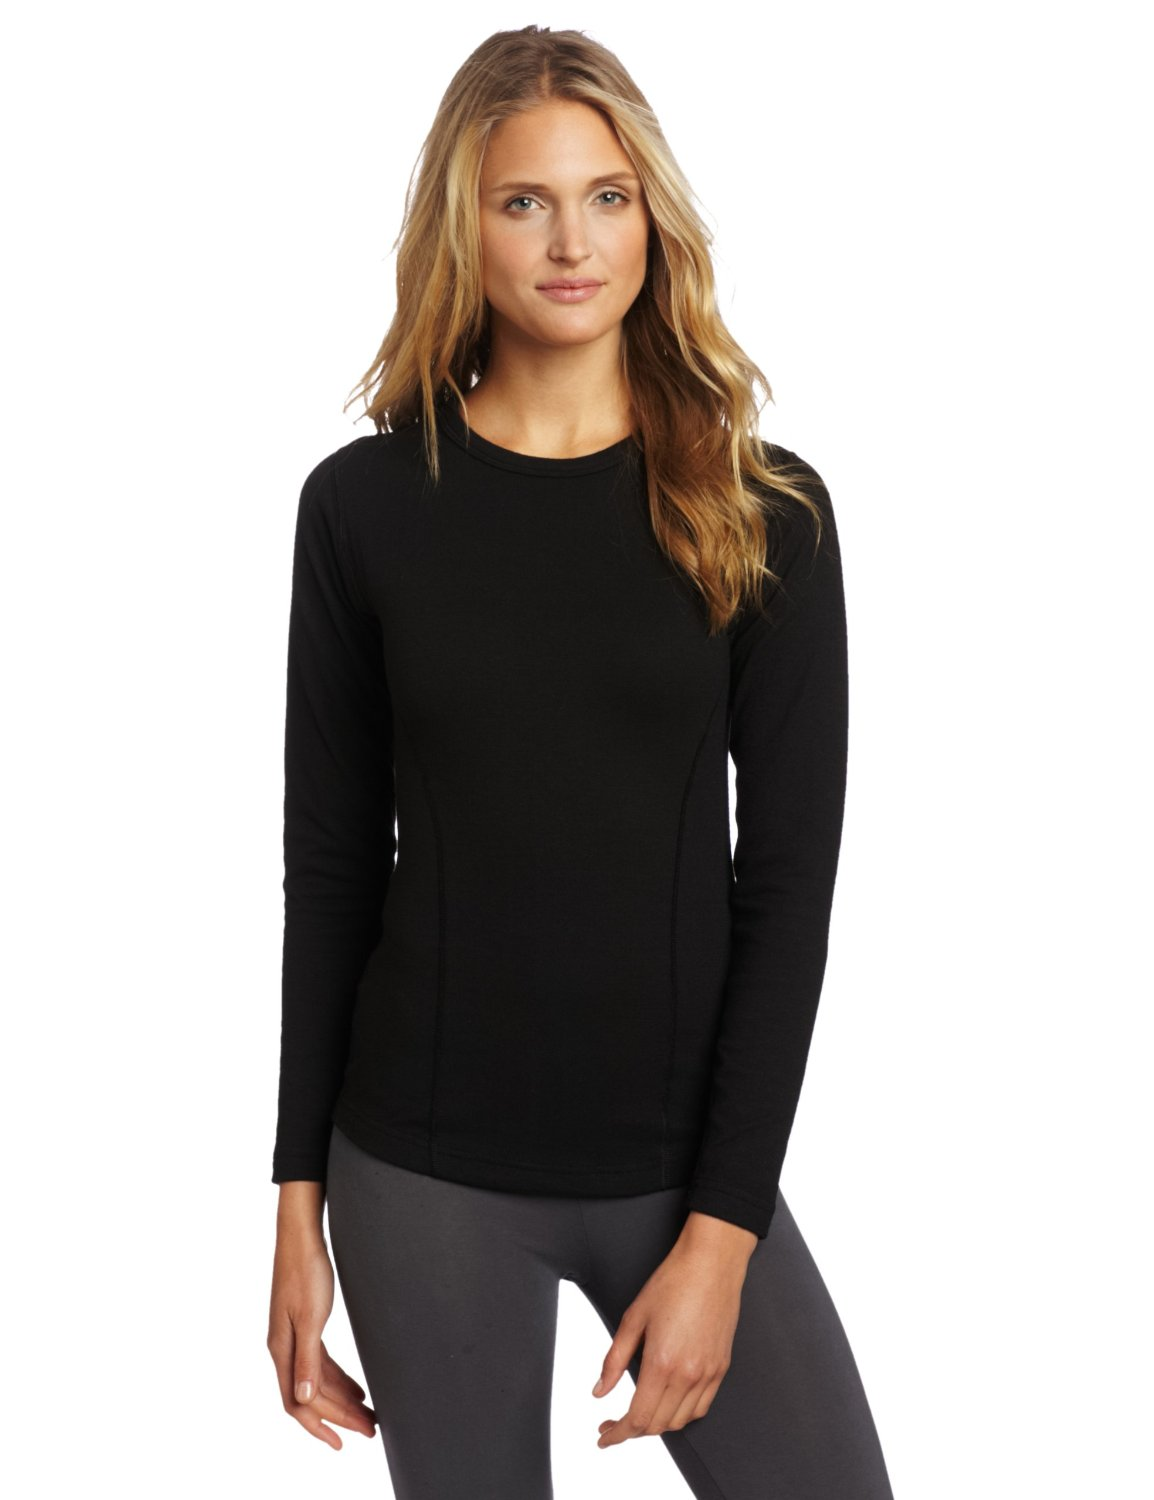 594a650e KEW3 - Duofold Varitherm Women's Expedition Weight Long Sleeve Crew – NY  Lingerie